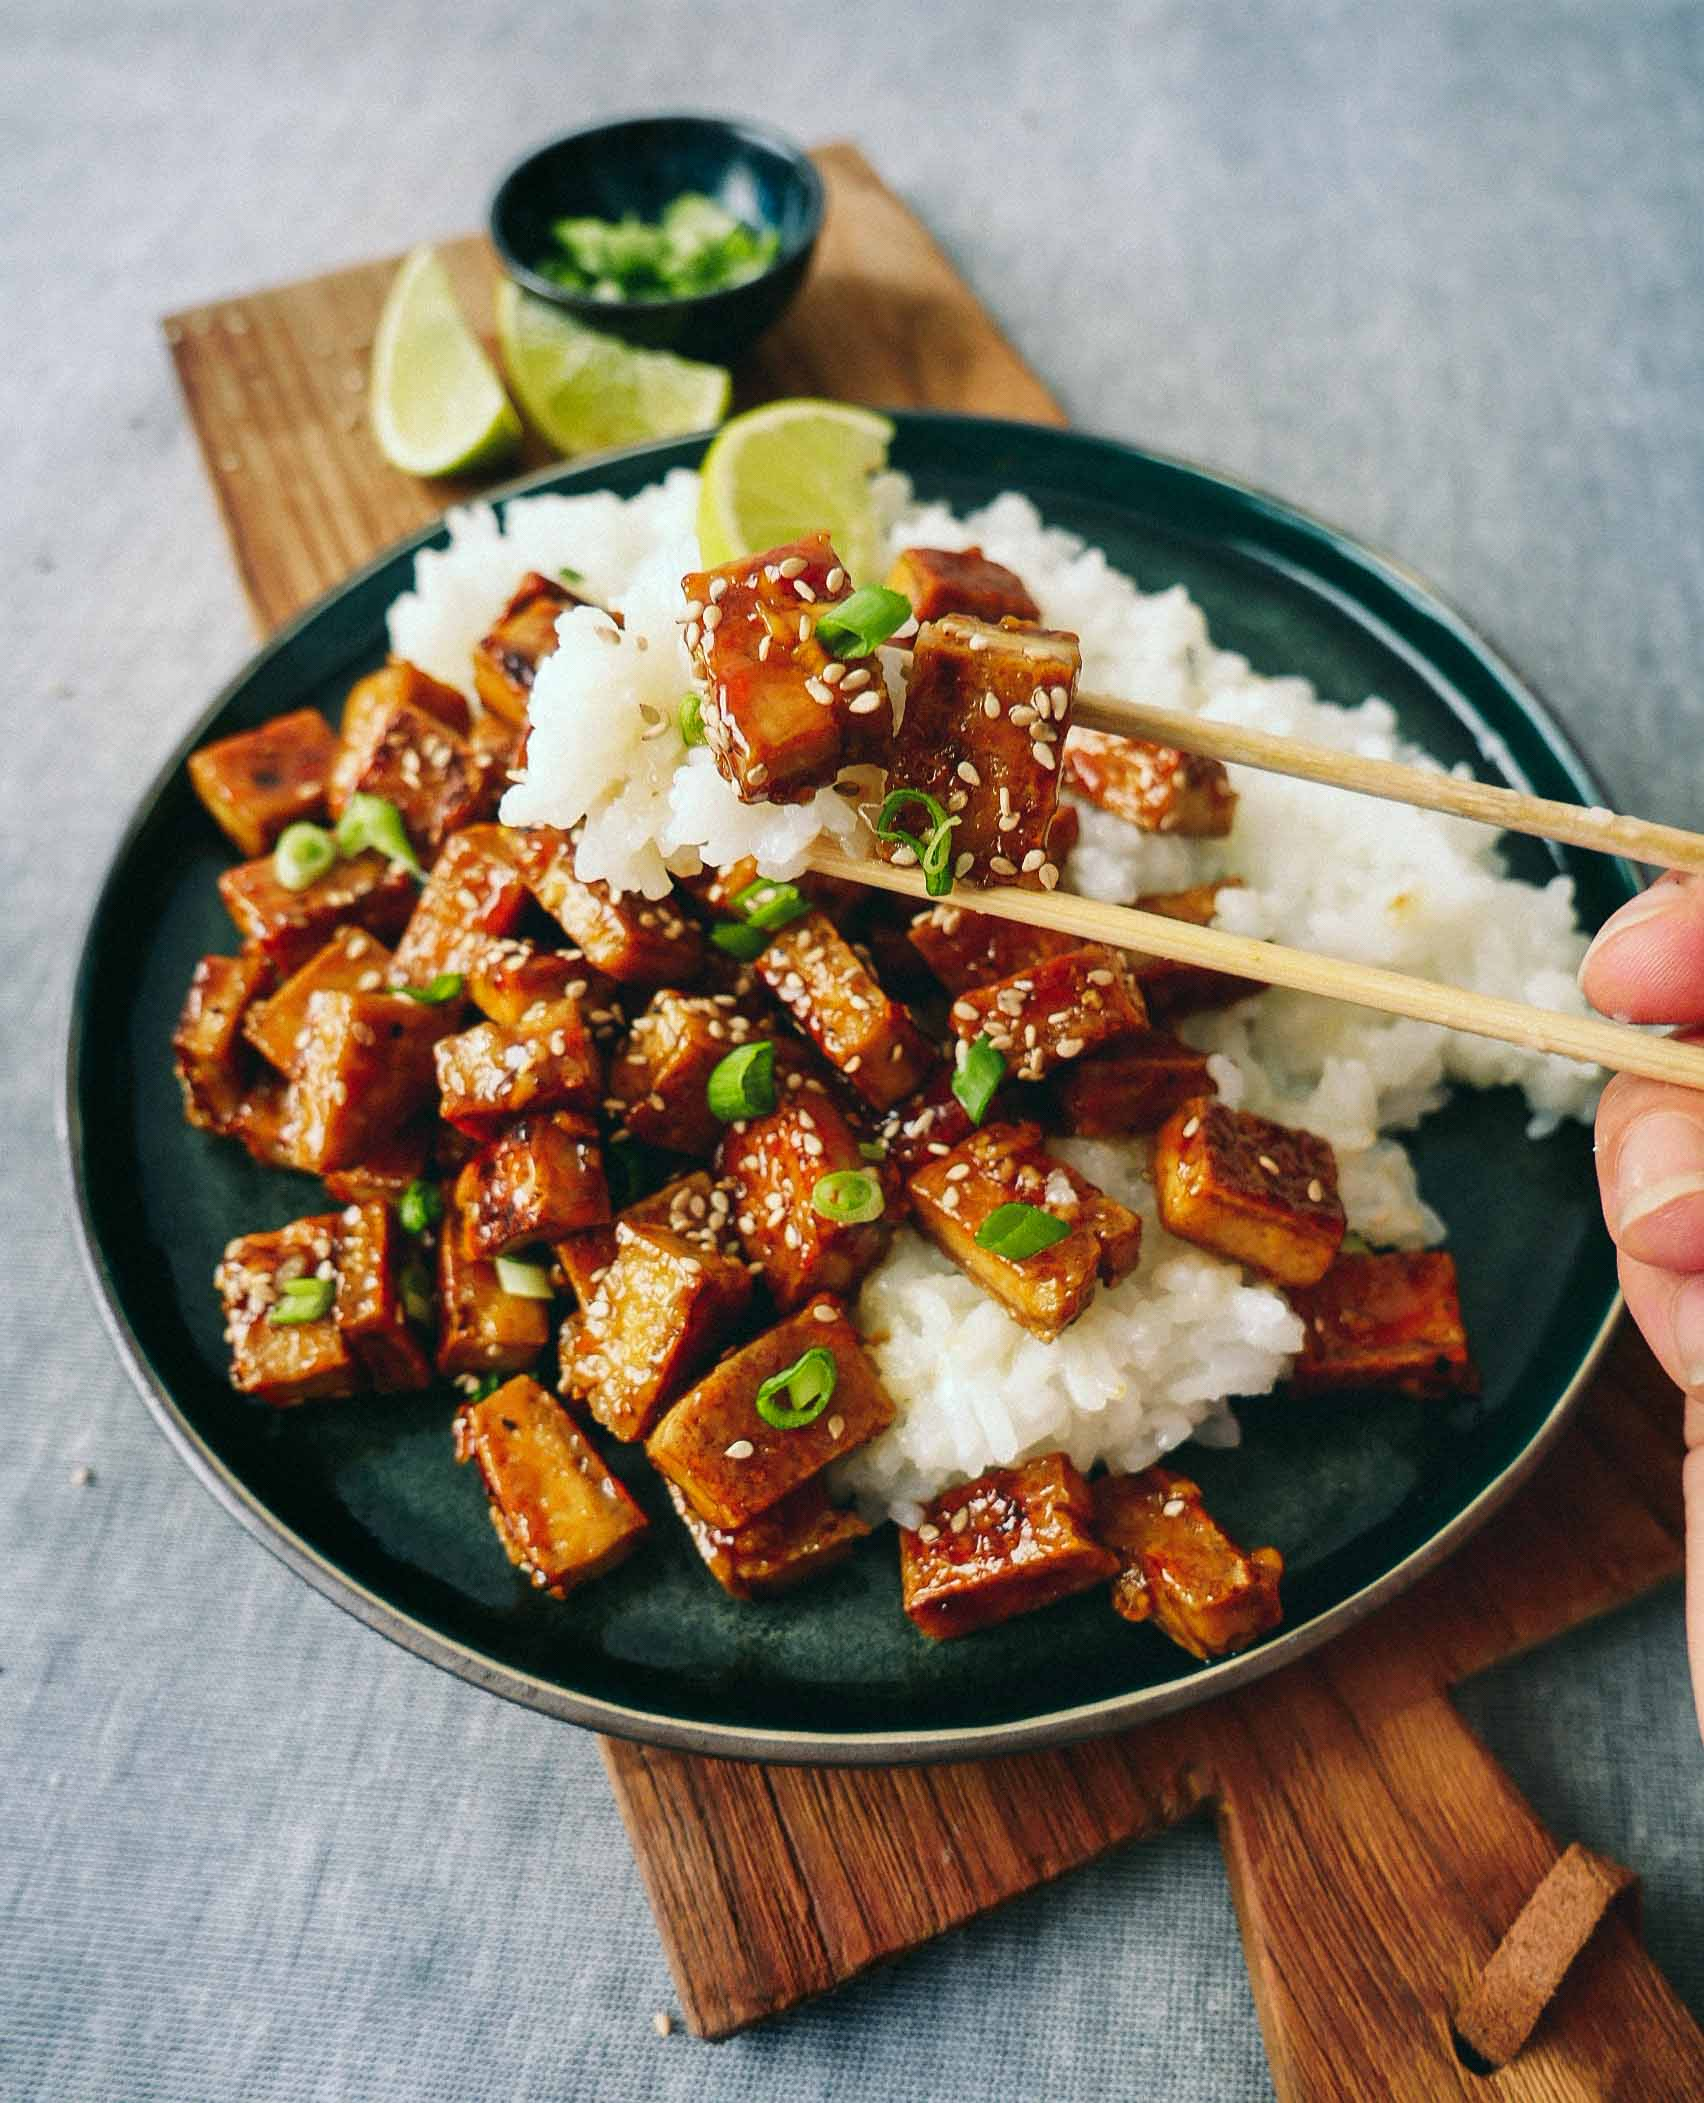 Fried caramelized tofu